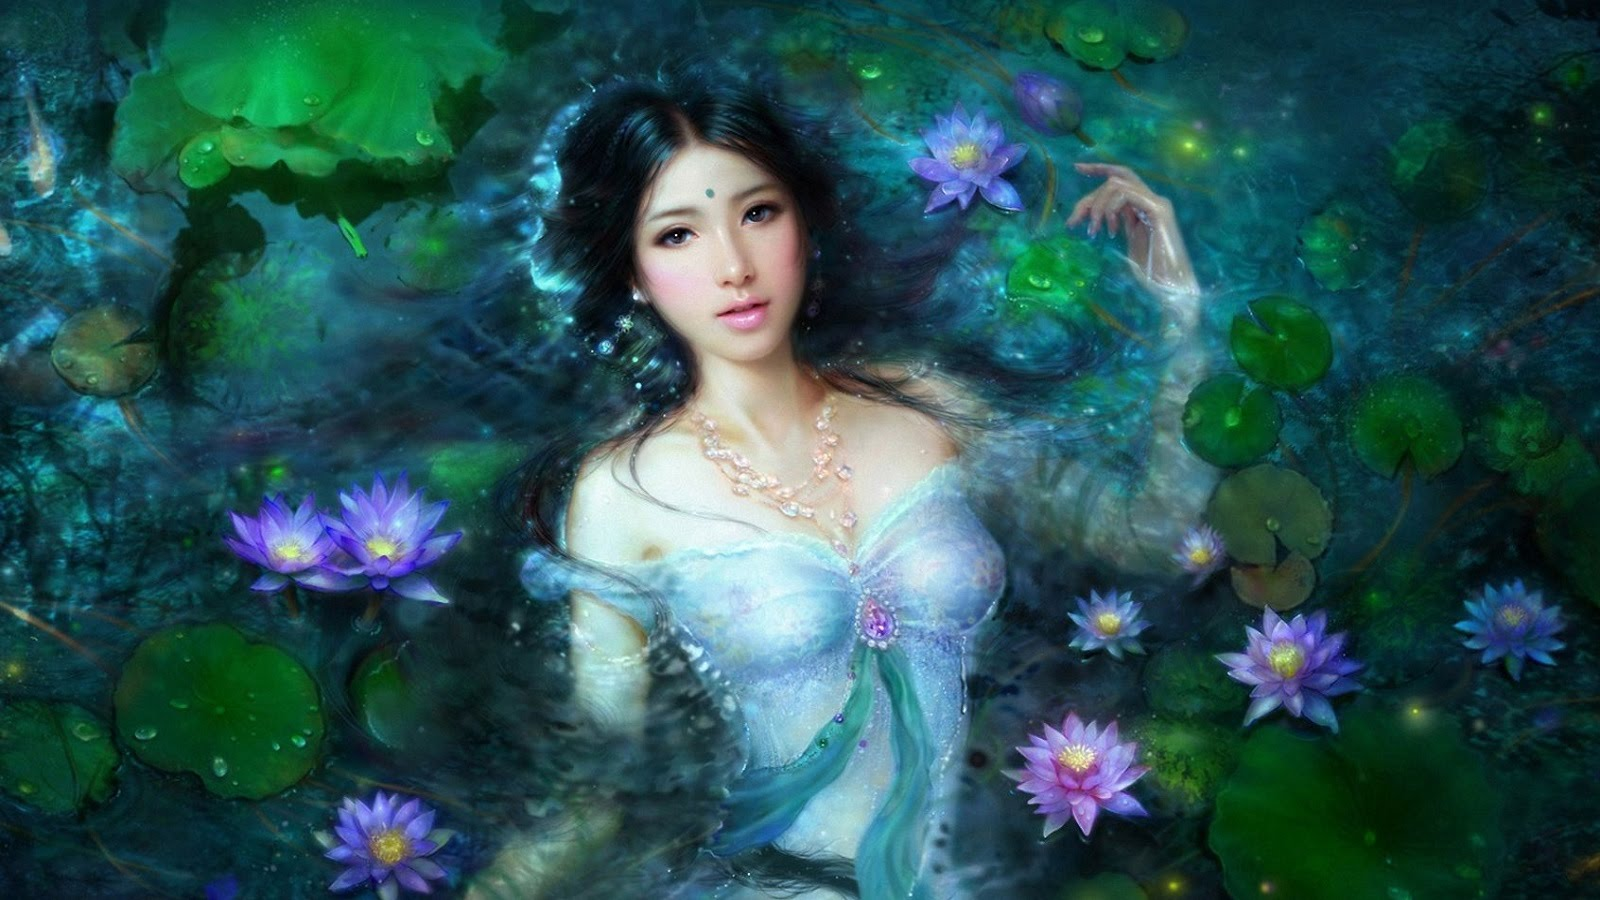 fantasy images nymph hd wallpaper and background photos 41182271